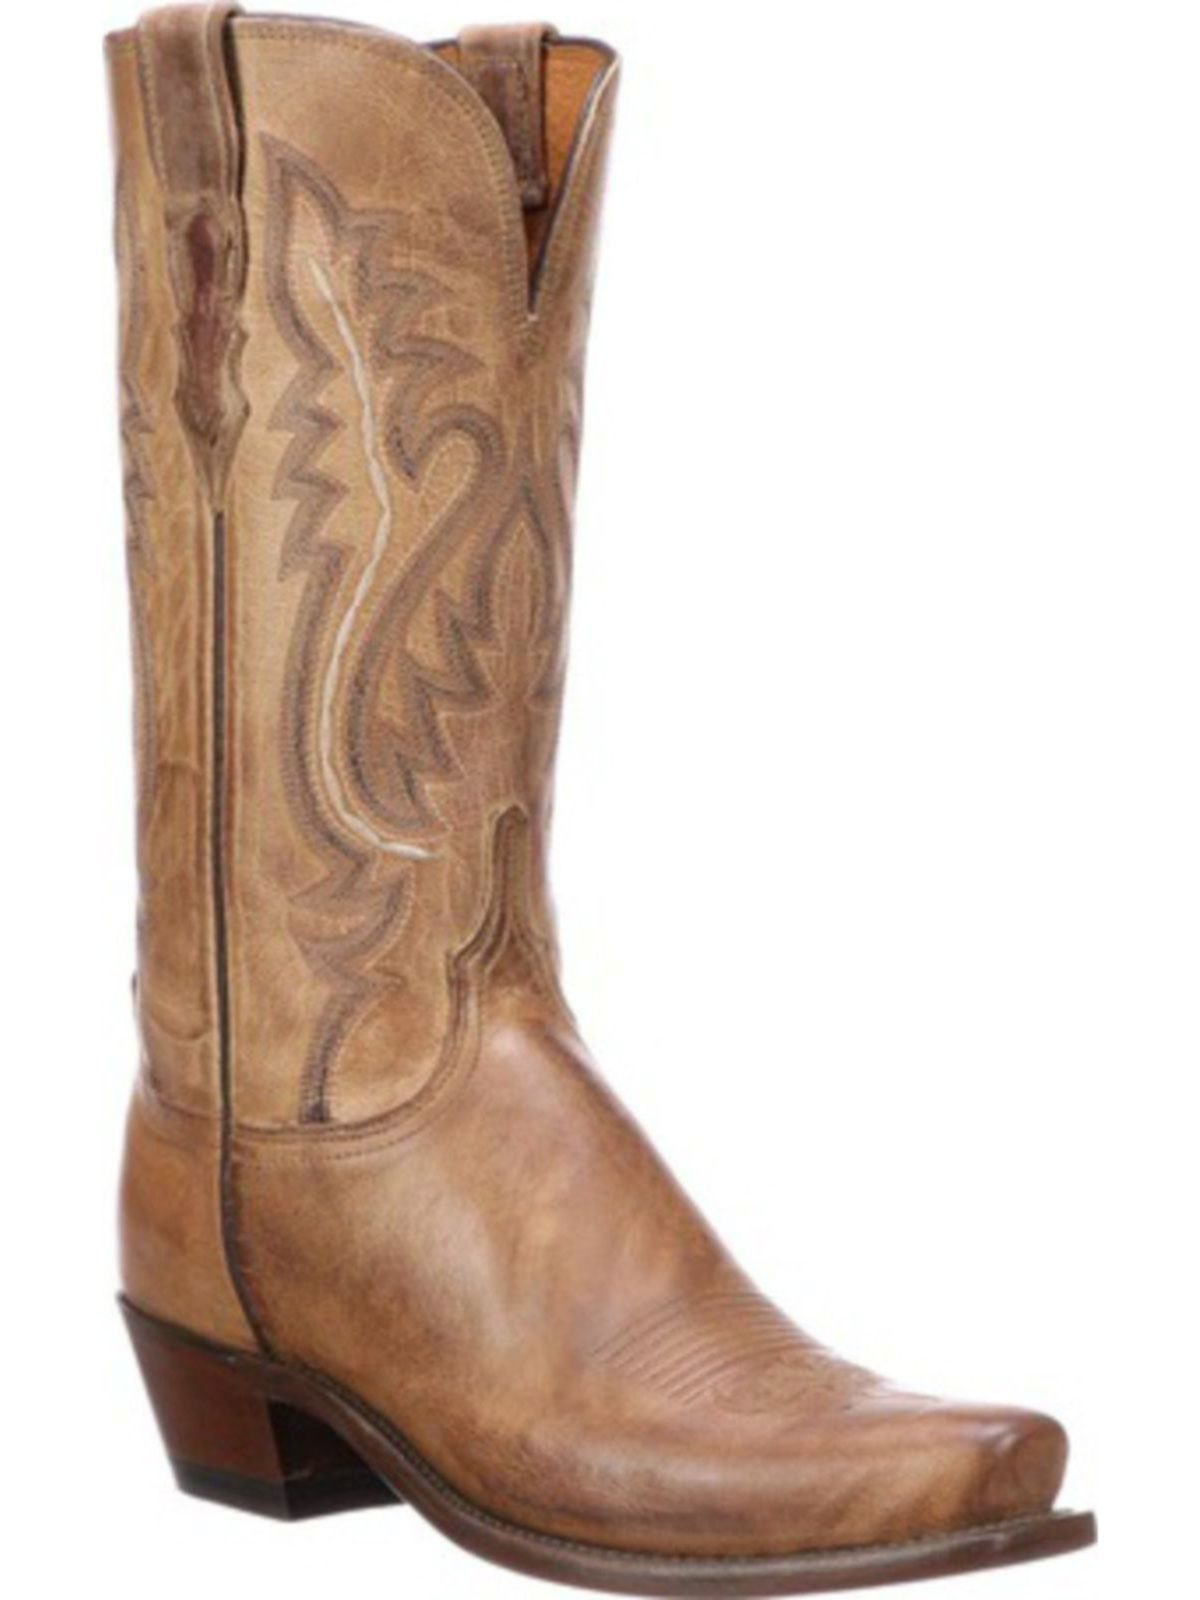 Bootamerica Lucchese Womens Cassidy Tan Goat Western